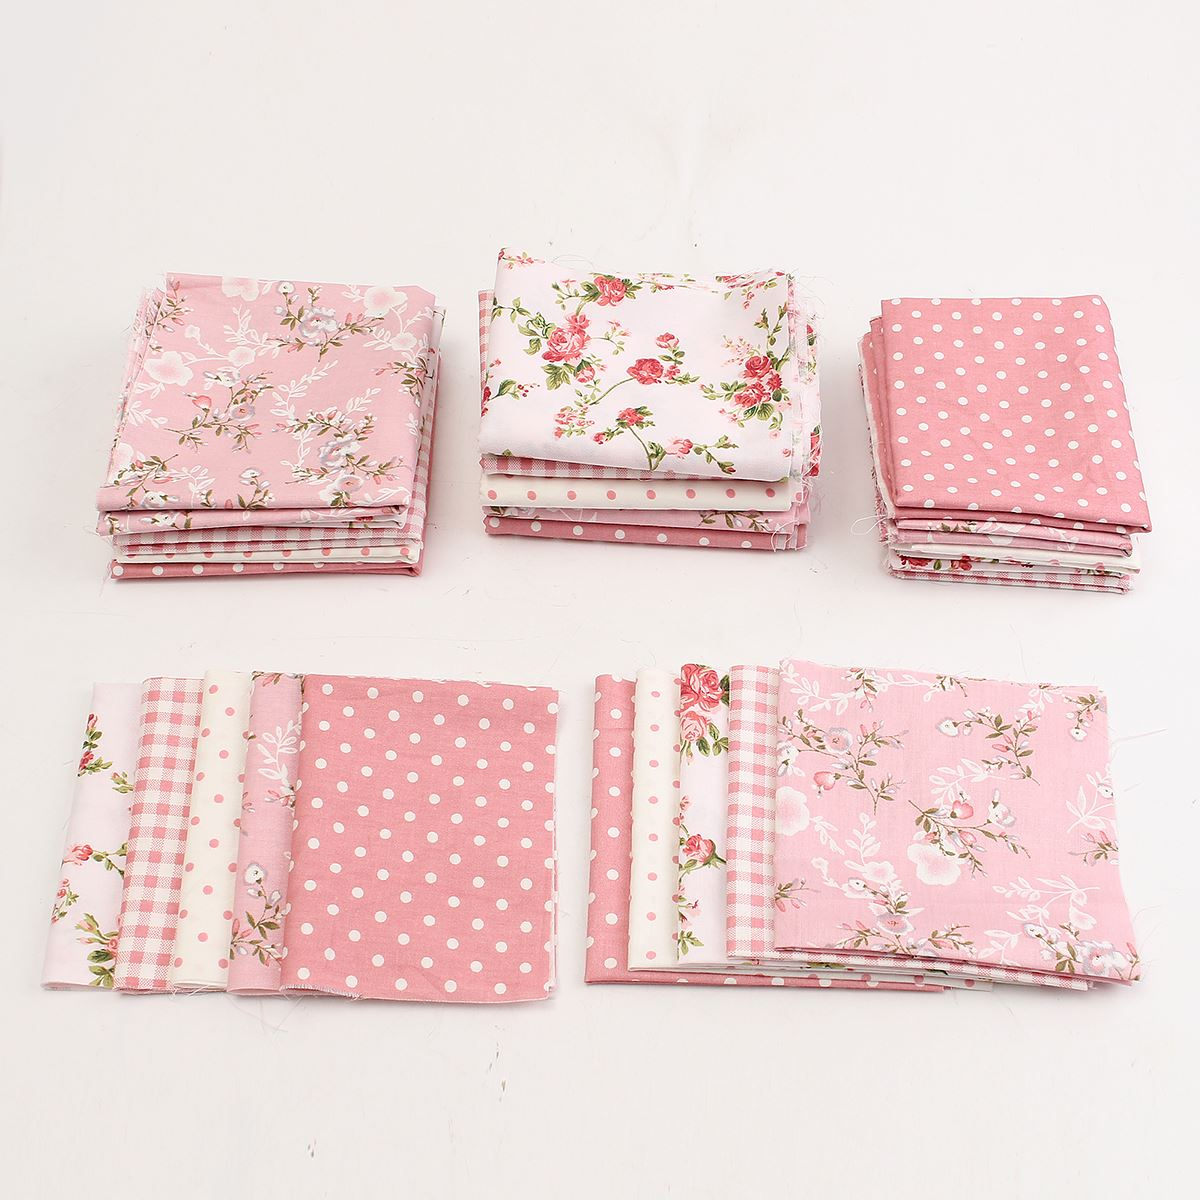 5Pcs Unique Pink Flower Floral Dot Cotton Fabric Patchwork For Quilting Household Sewing Clothing Doll Needlework DIY Material